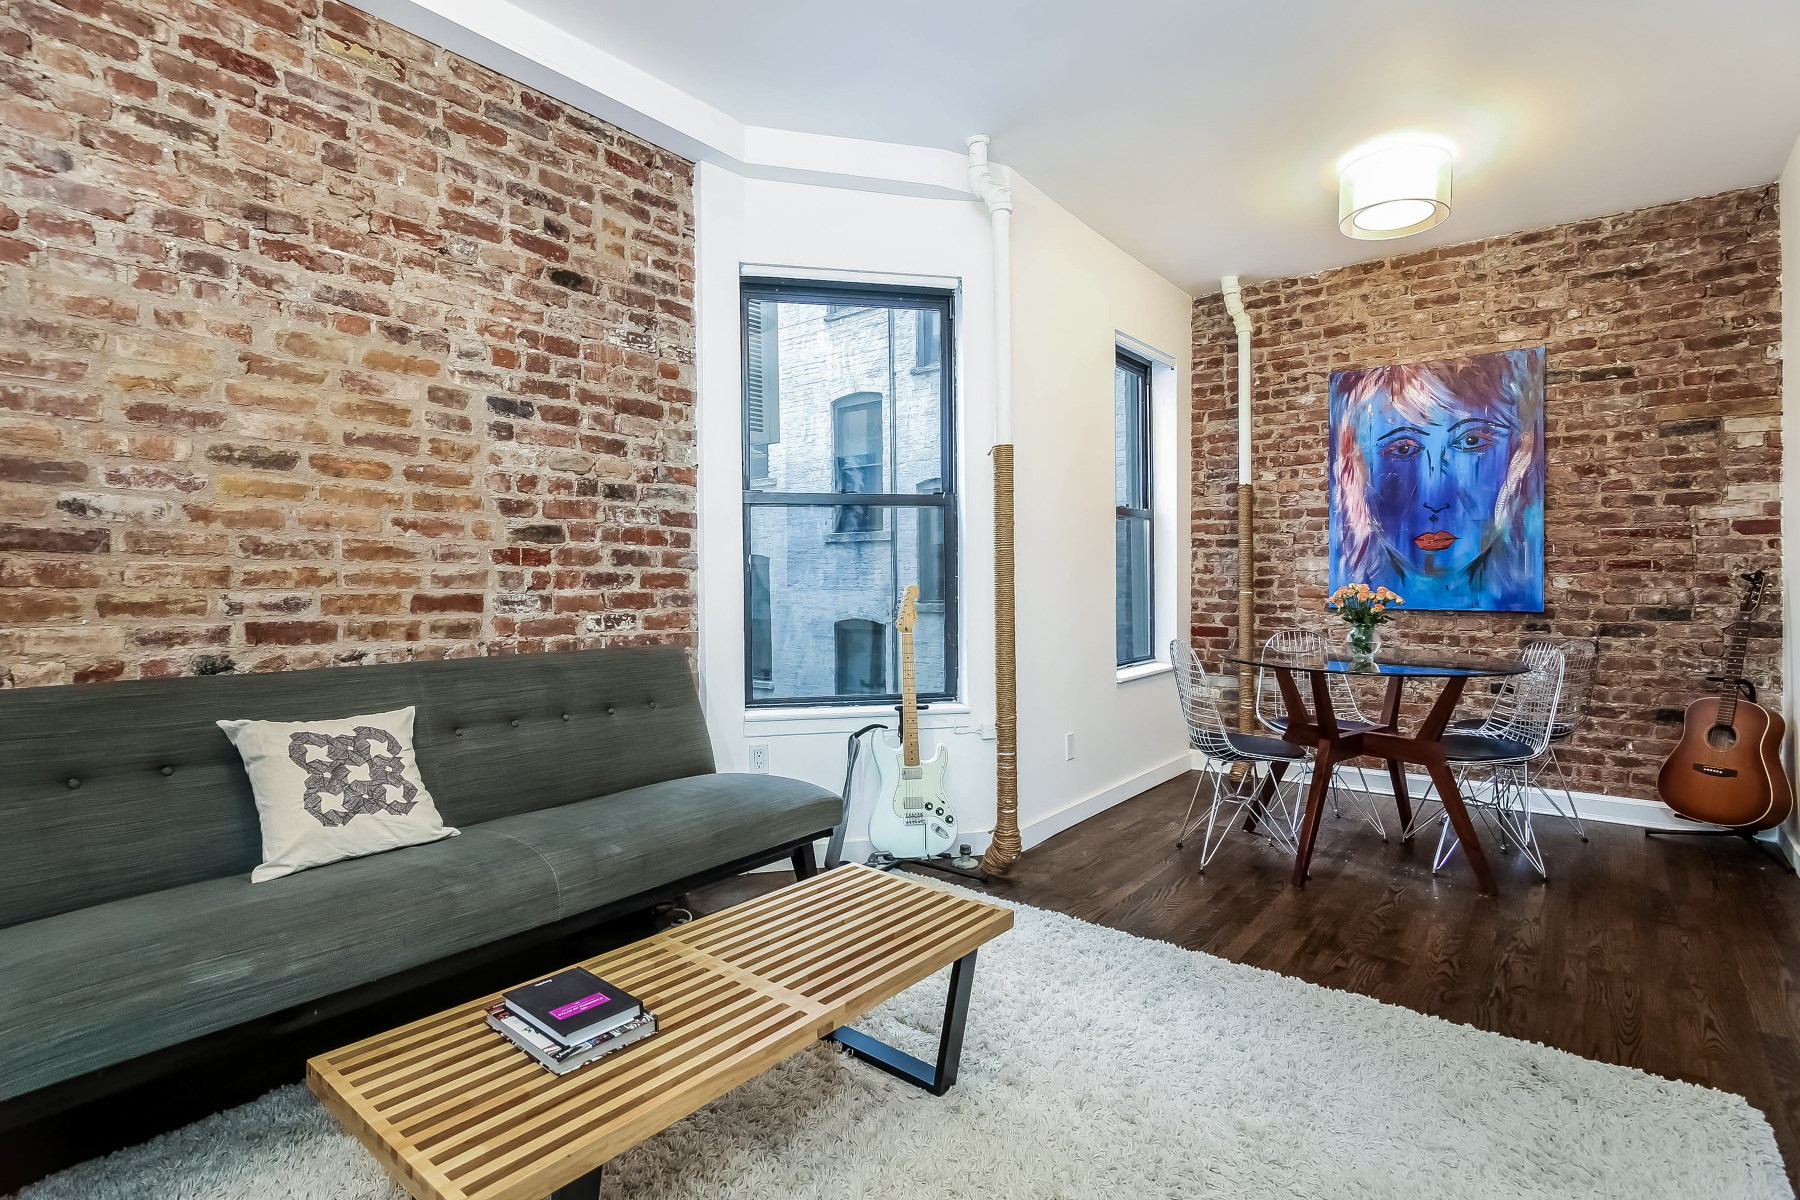 Co-op for Sale at 315 East 12th Street, Apt. 15 315 East 12th Street Apt 15 East Village, New York, New York, 10003 United States